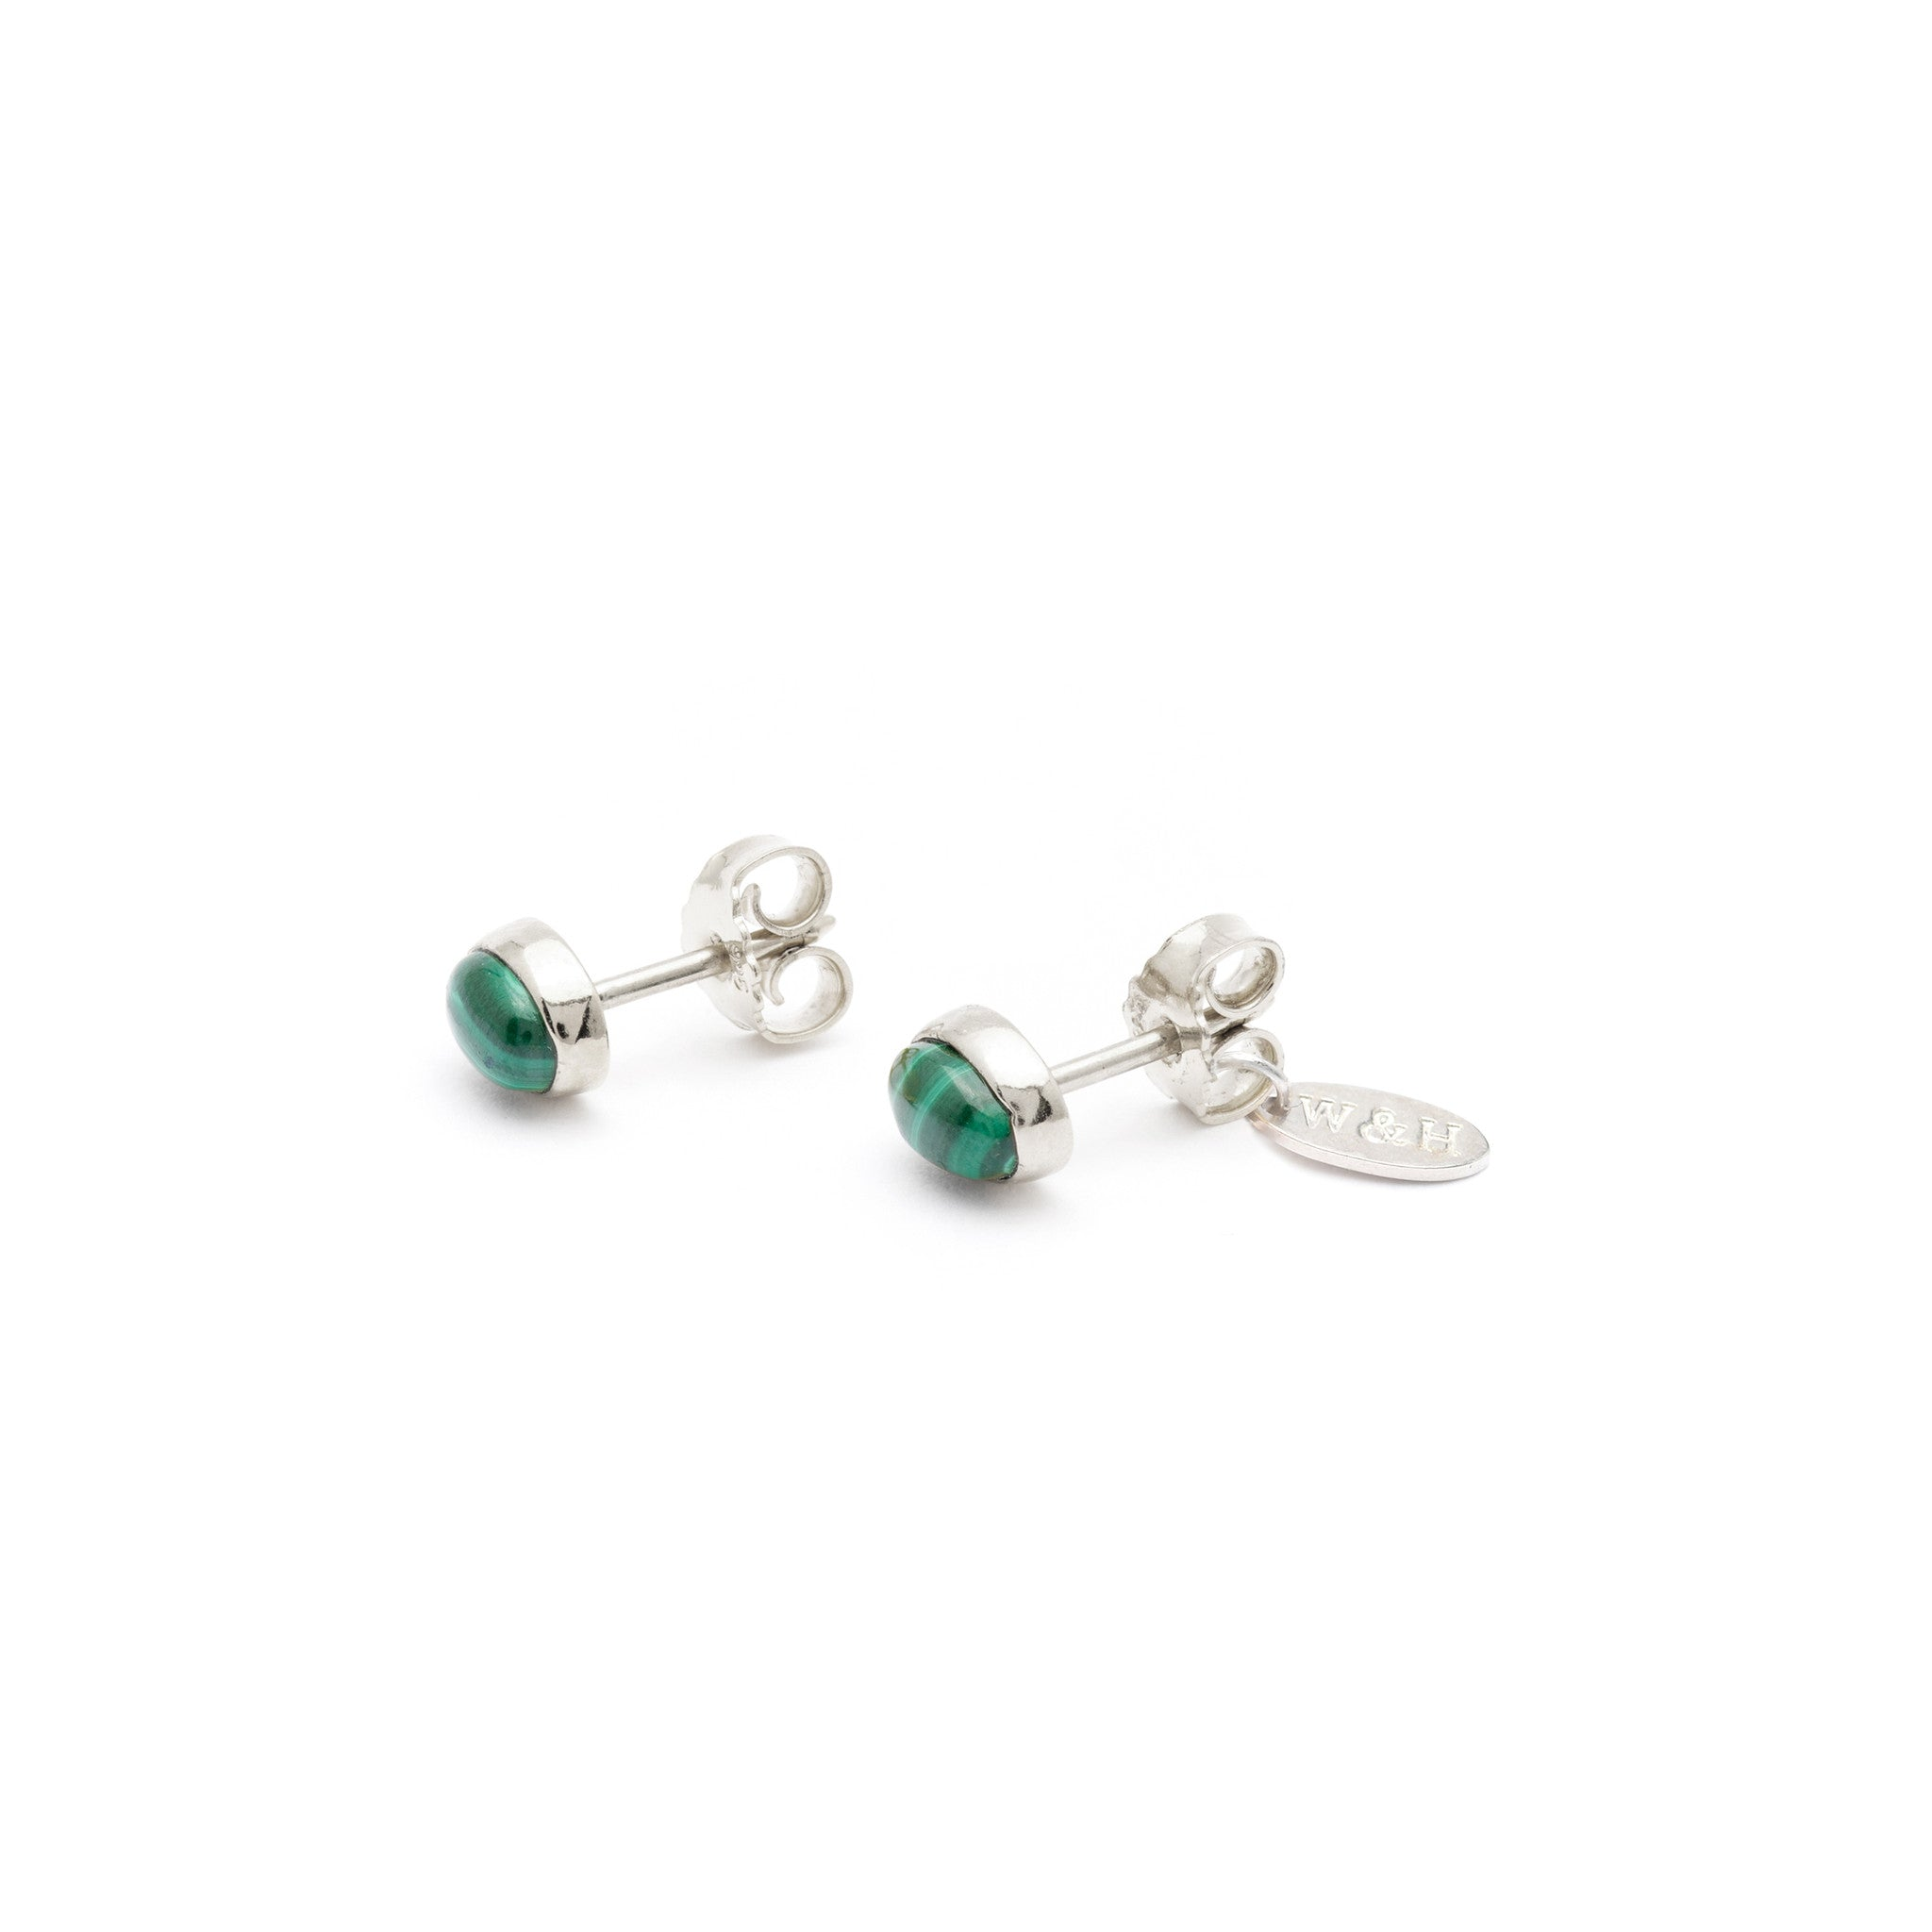 Stud Earrings with Malachite stone